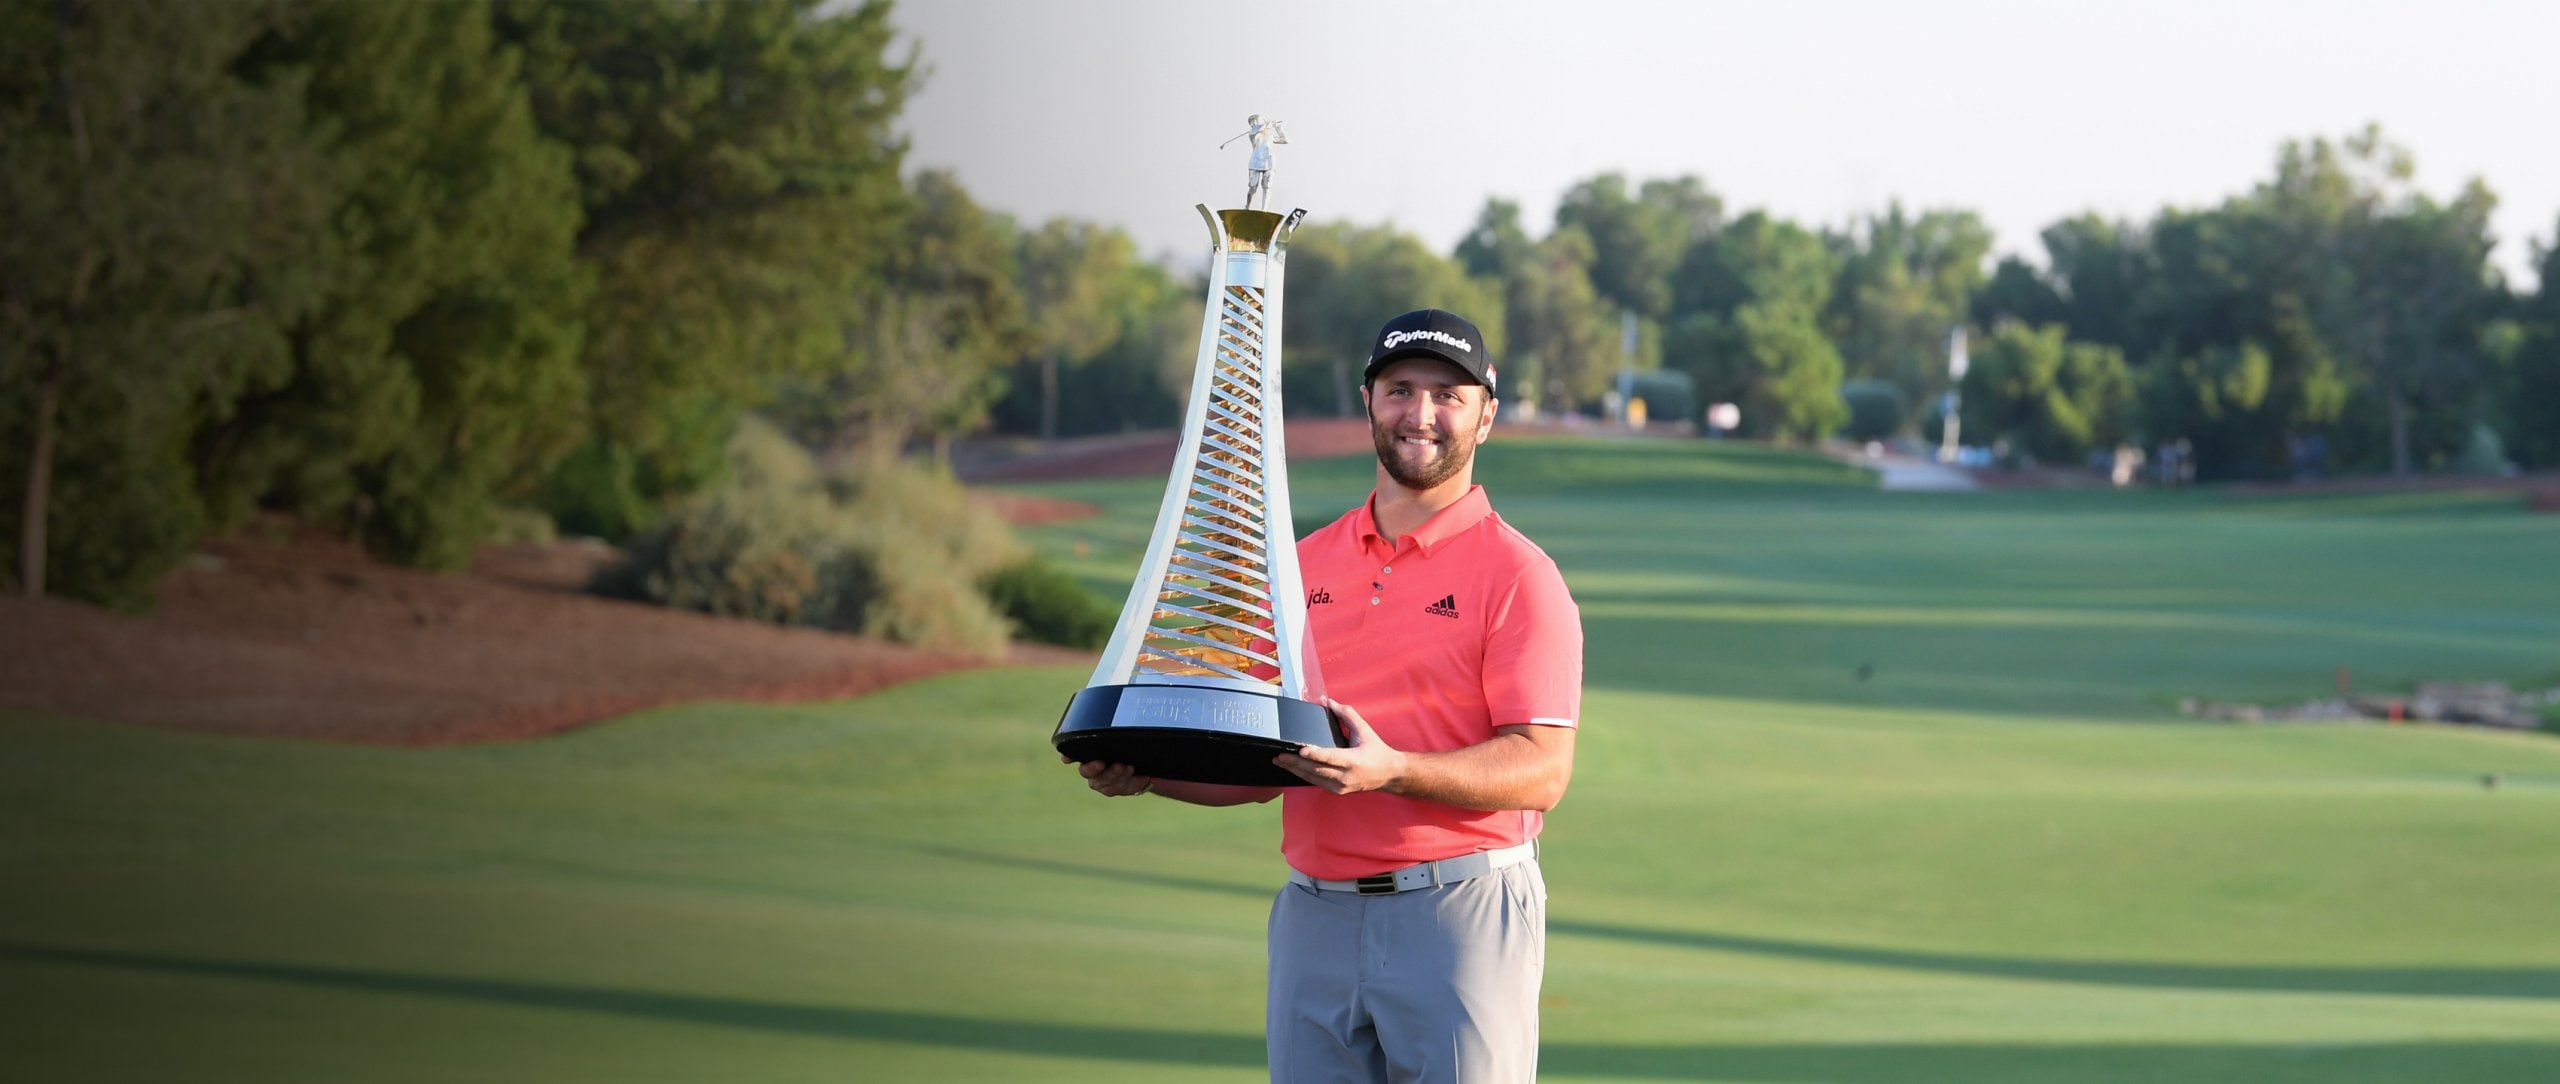 Jon Rahm lift the trophy he received for winning the Race to Dubai 2019.